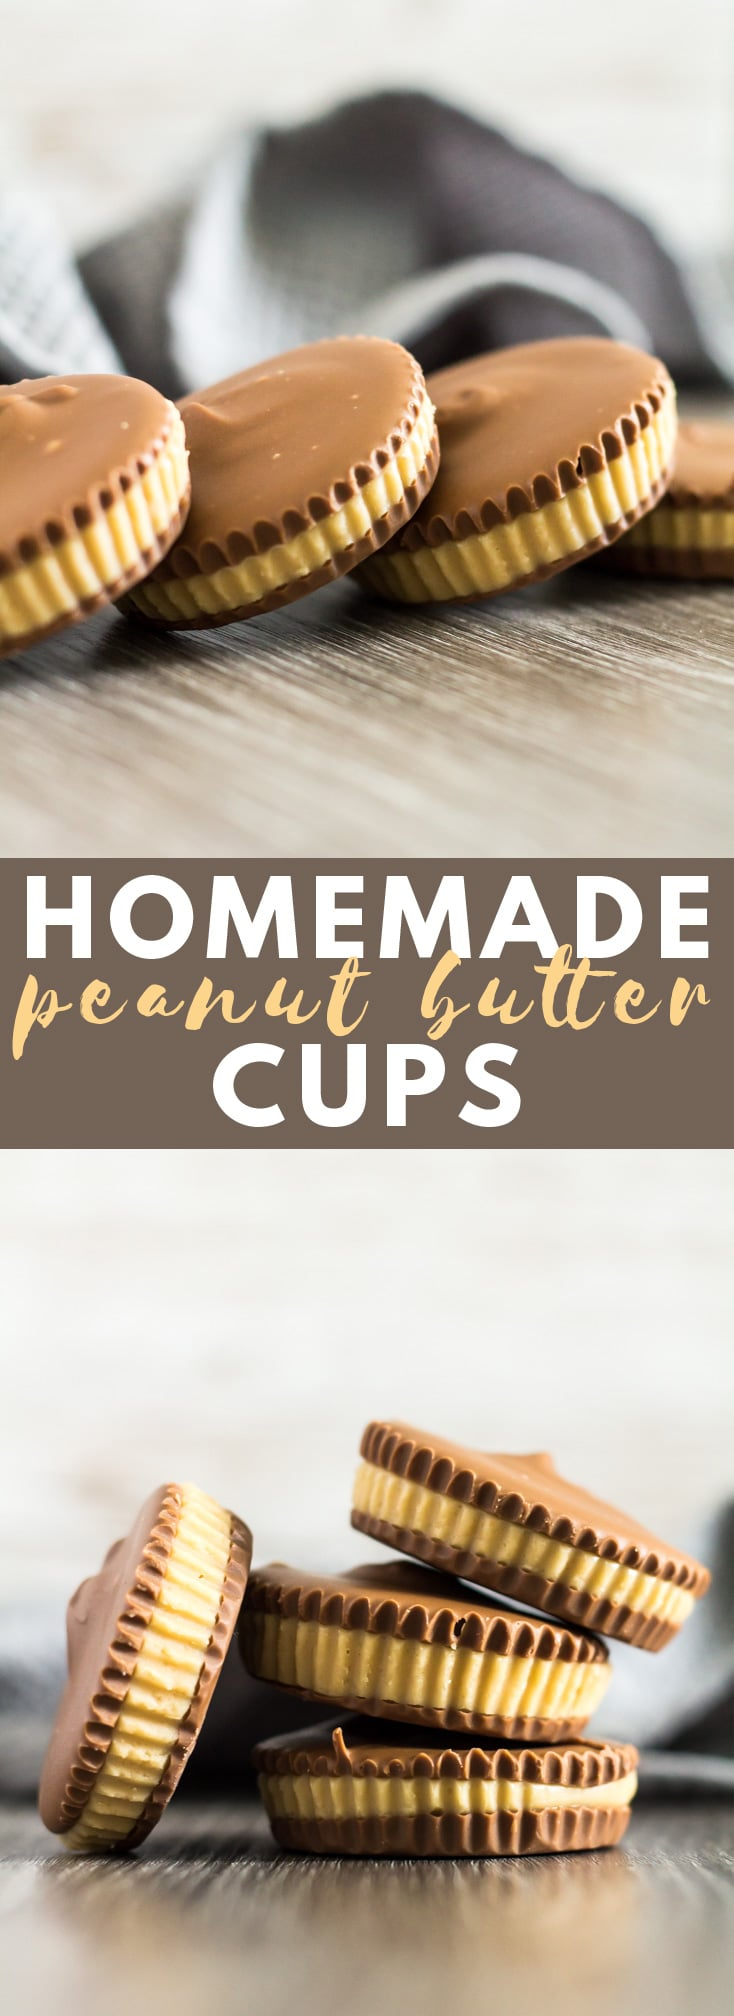 Homemade Peanut Butter Cups - A deliciously creamy and smooth peanut butter layer sandwiched between layers of milk chocolate. The perfect no-bake treat for peanut butter and chocolate lovers! #peanutbutter #peanutbuttercups #chocolate #recipe